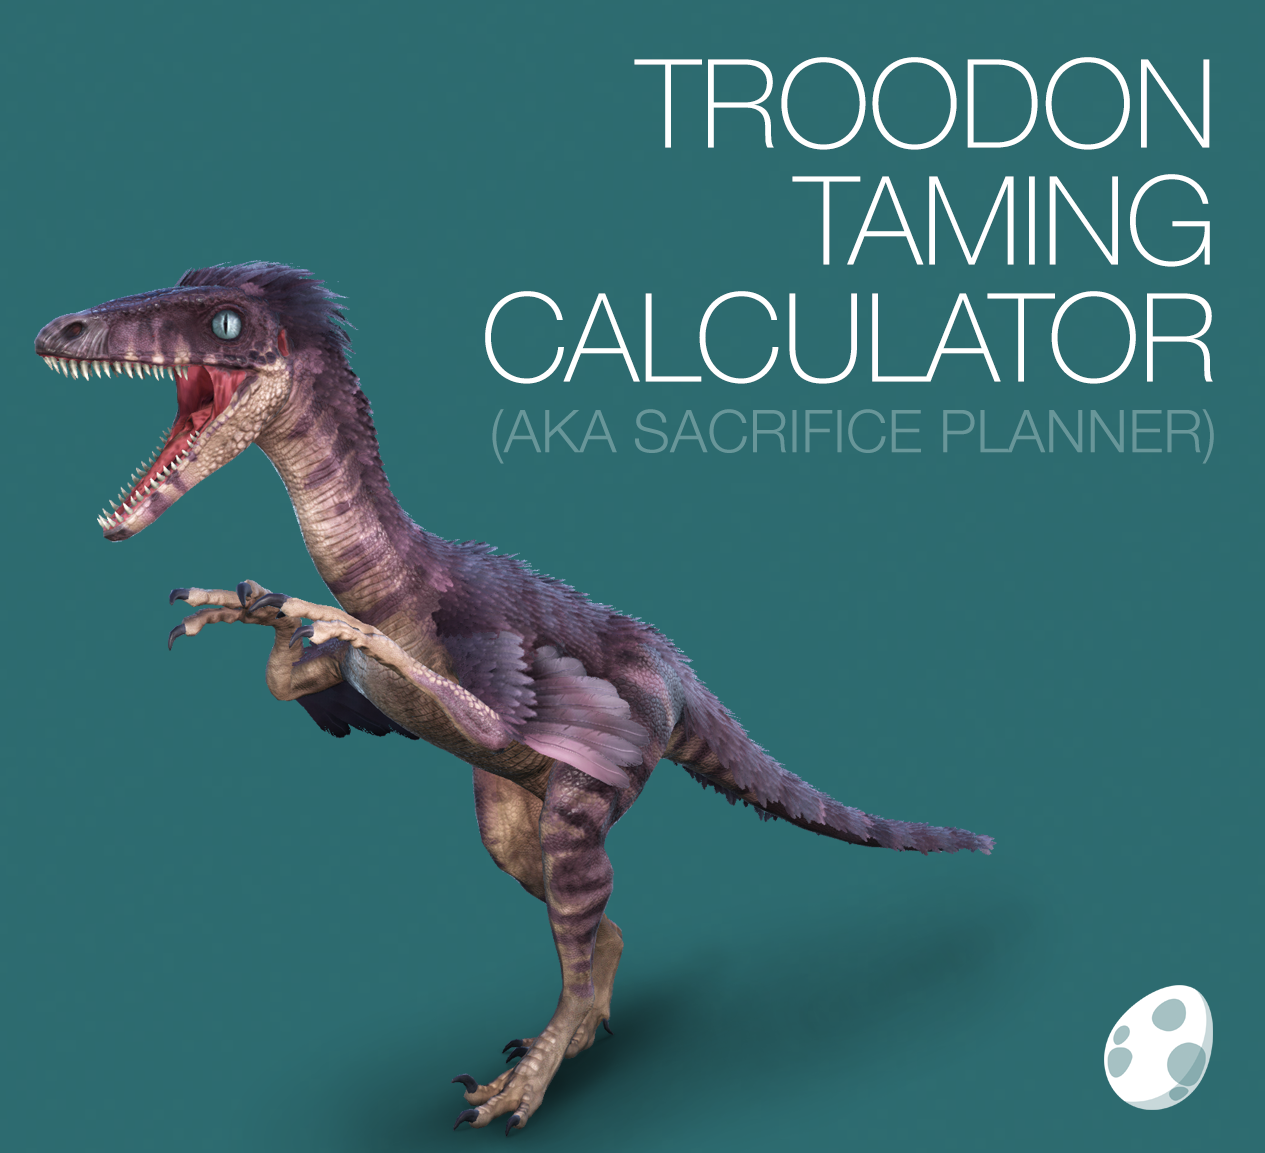 Troodon taming calculator for ark survival evolved httpwww troodon taming calculator for ark survival evolved including taming times food requirements kibble recipes saddle ingredients forumfinder Images